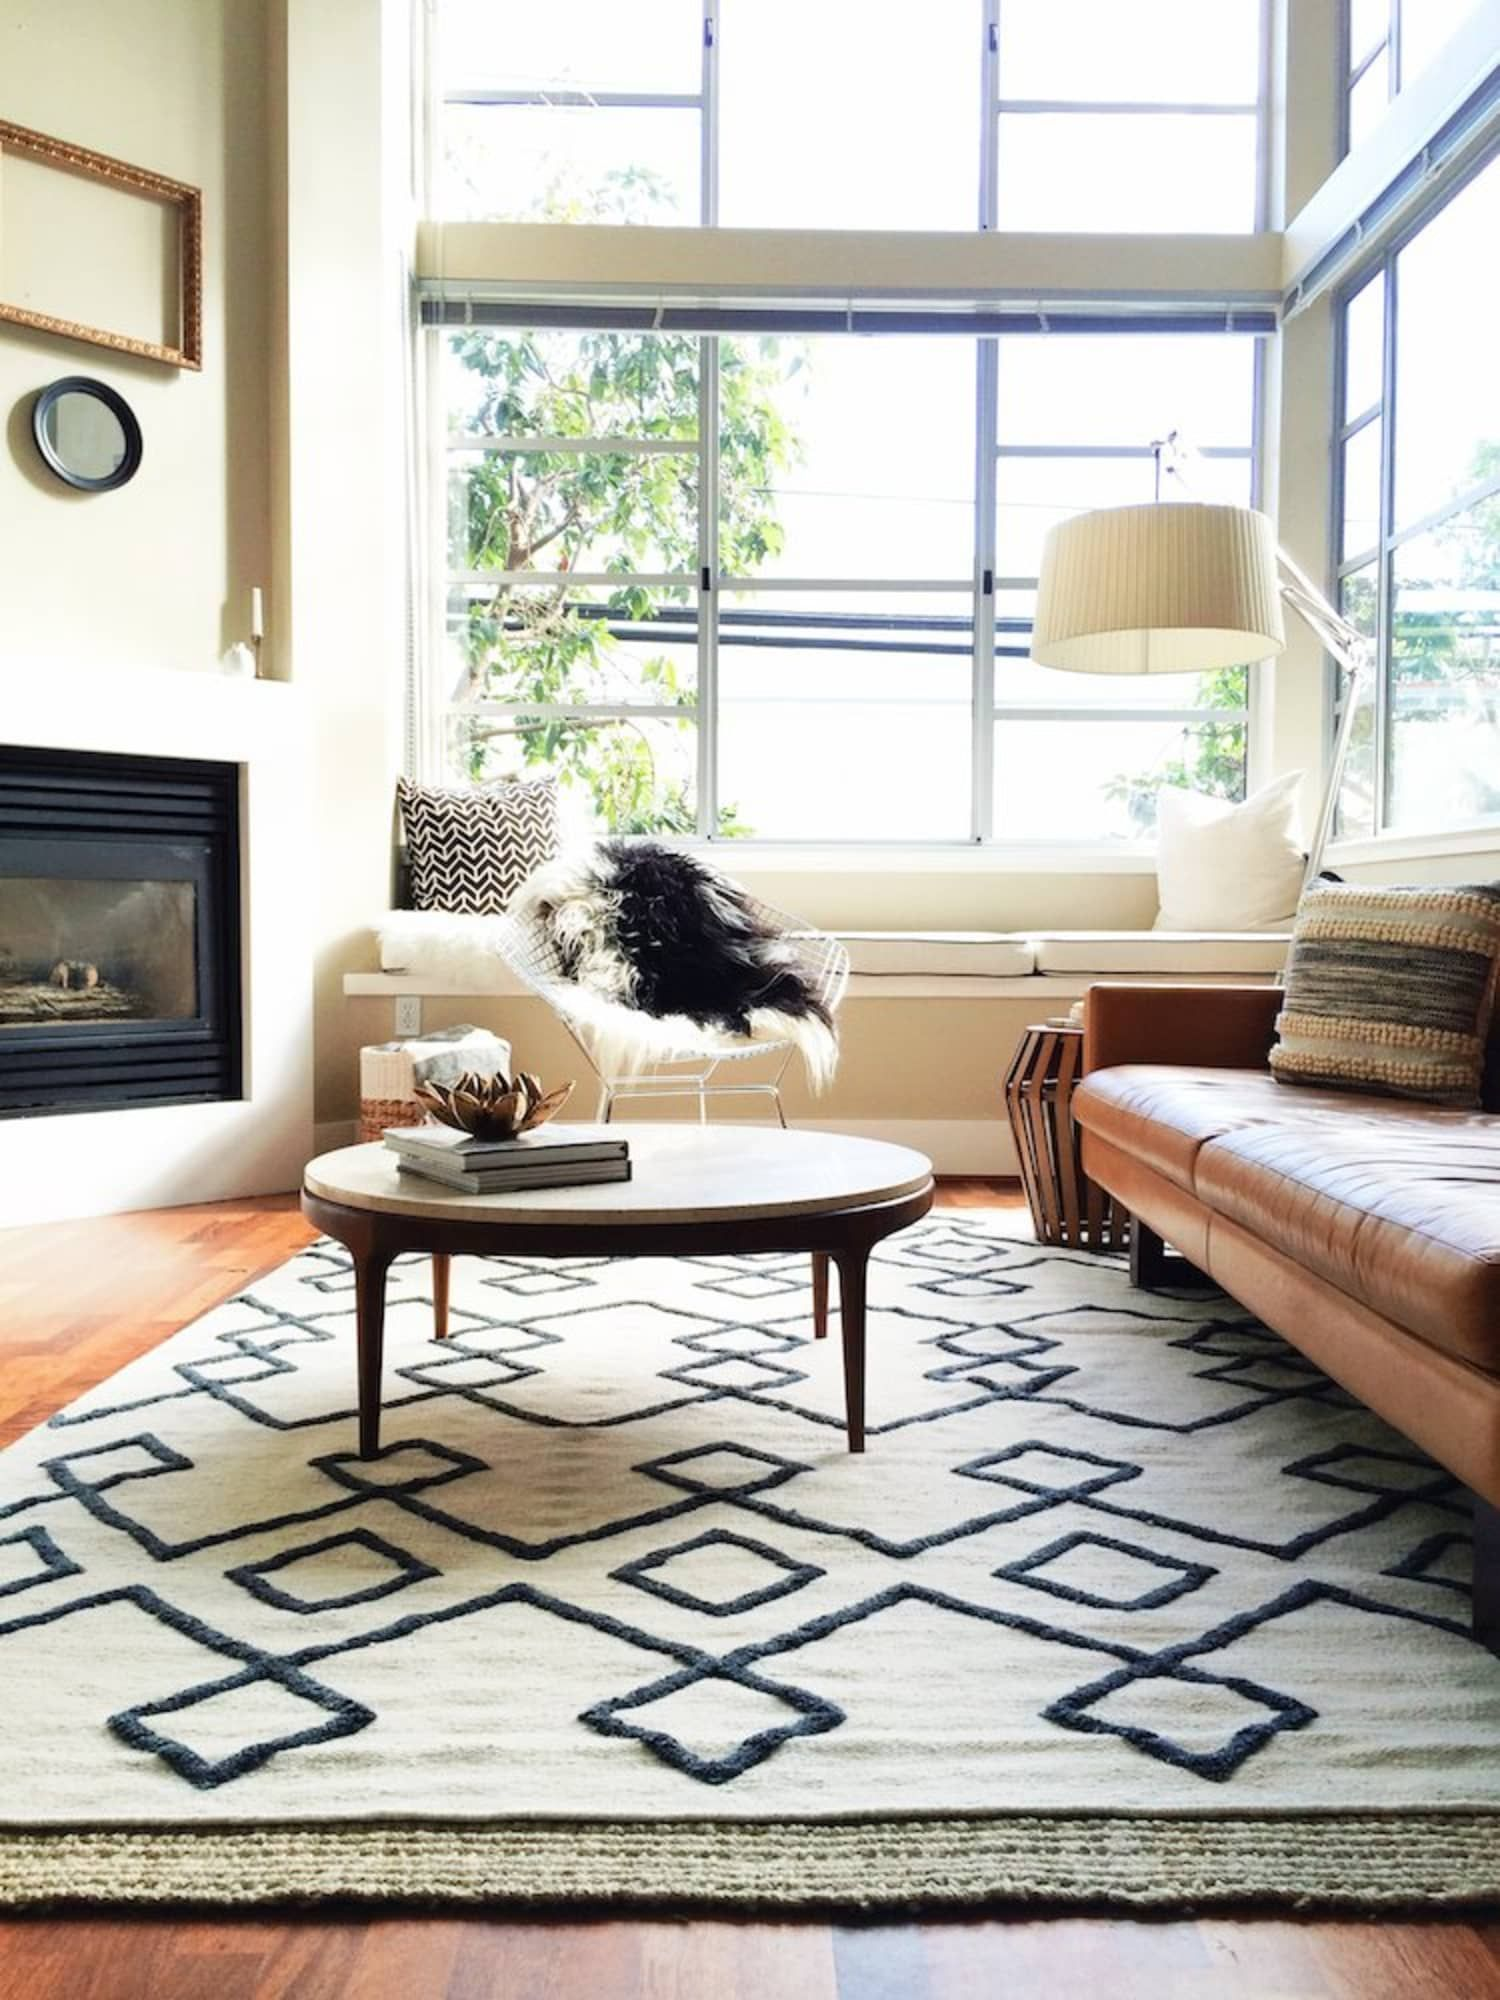 How To Choose The Right Rug For Every Room Rugs In Living Room Living Room Designs Home Living Room